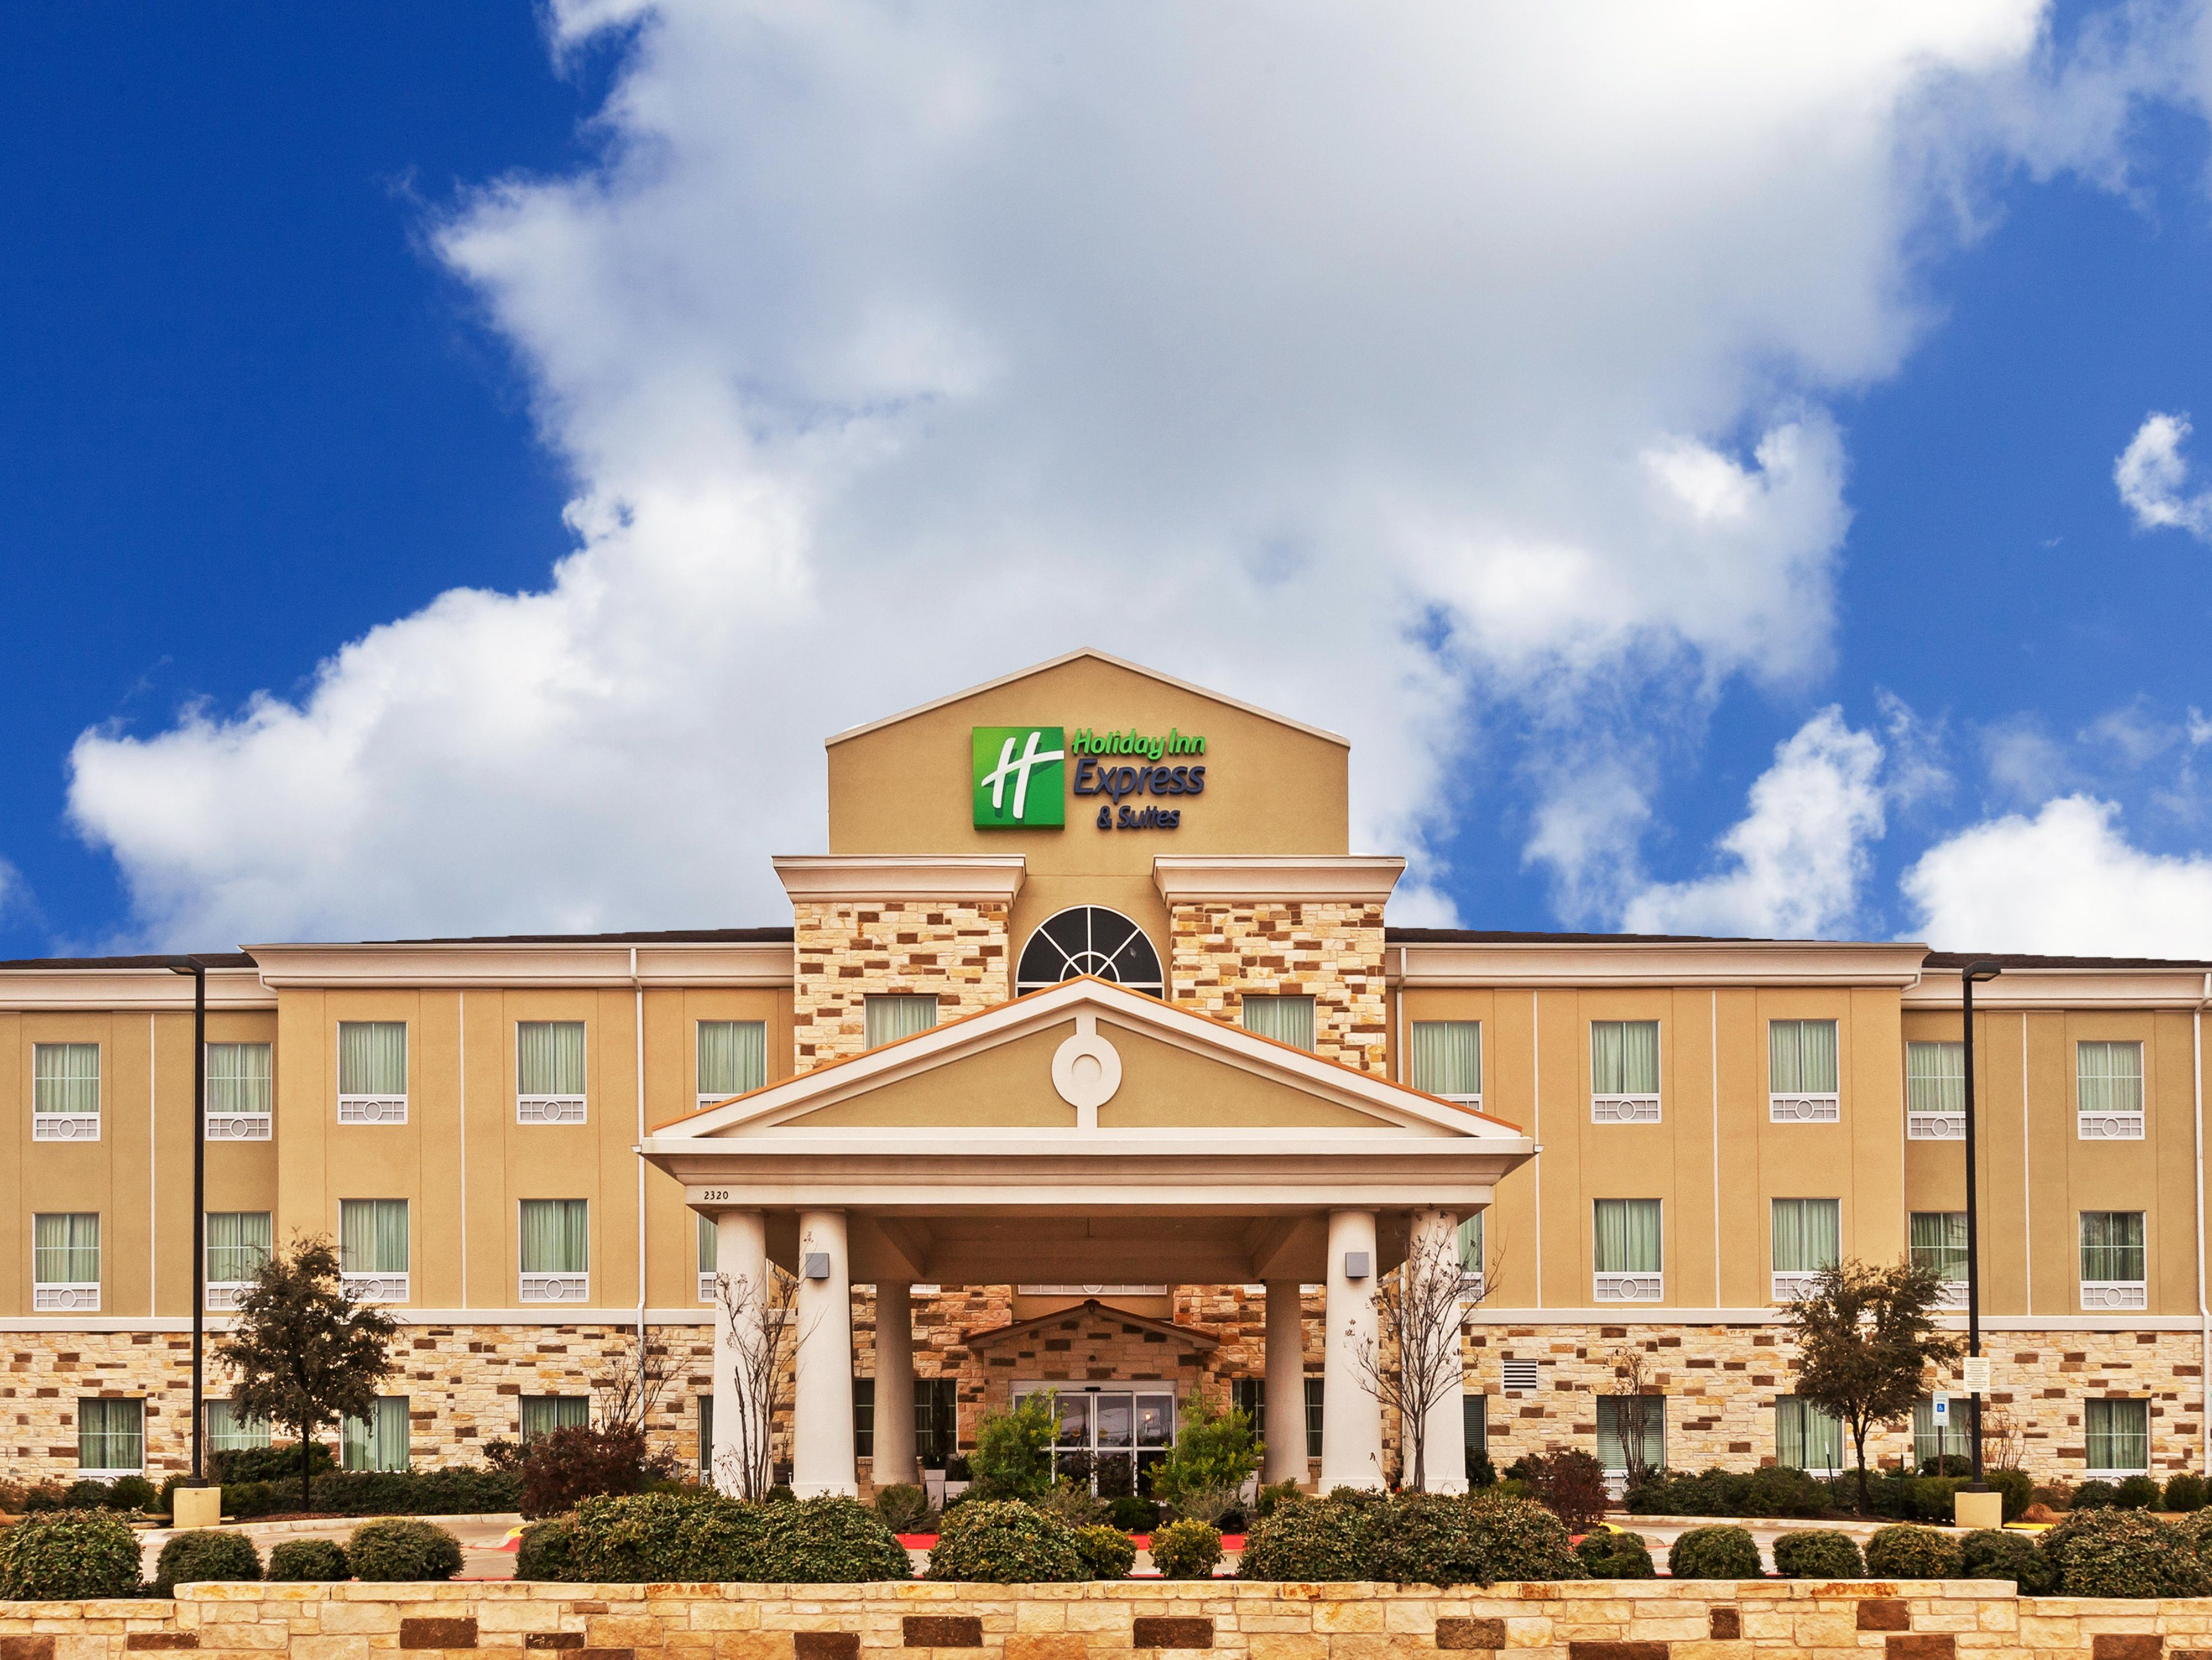 Welcome to the Holiday Inn Express & Suites Brady!